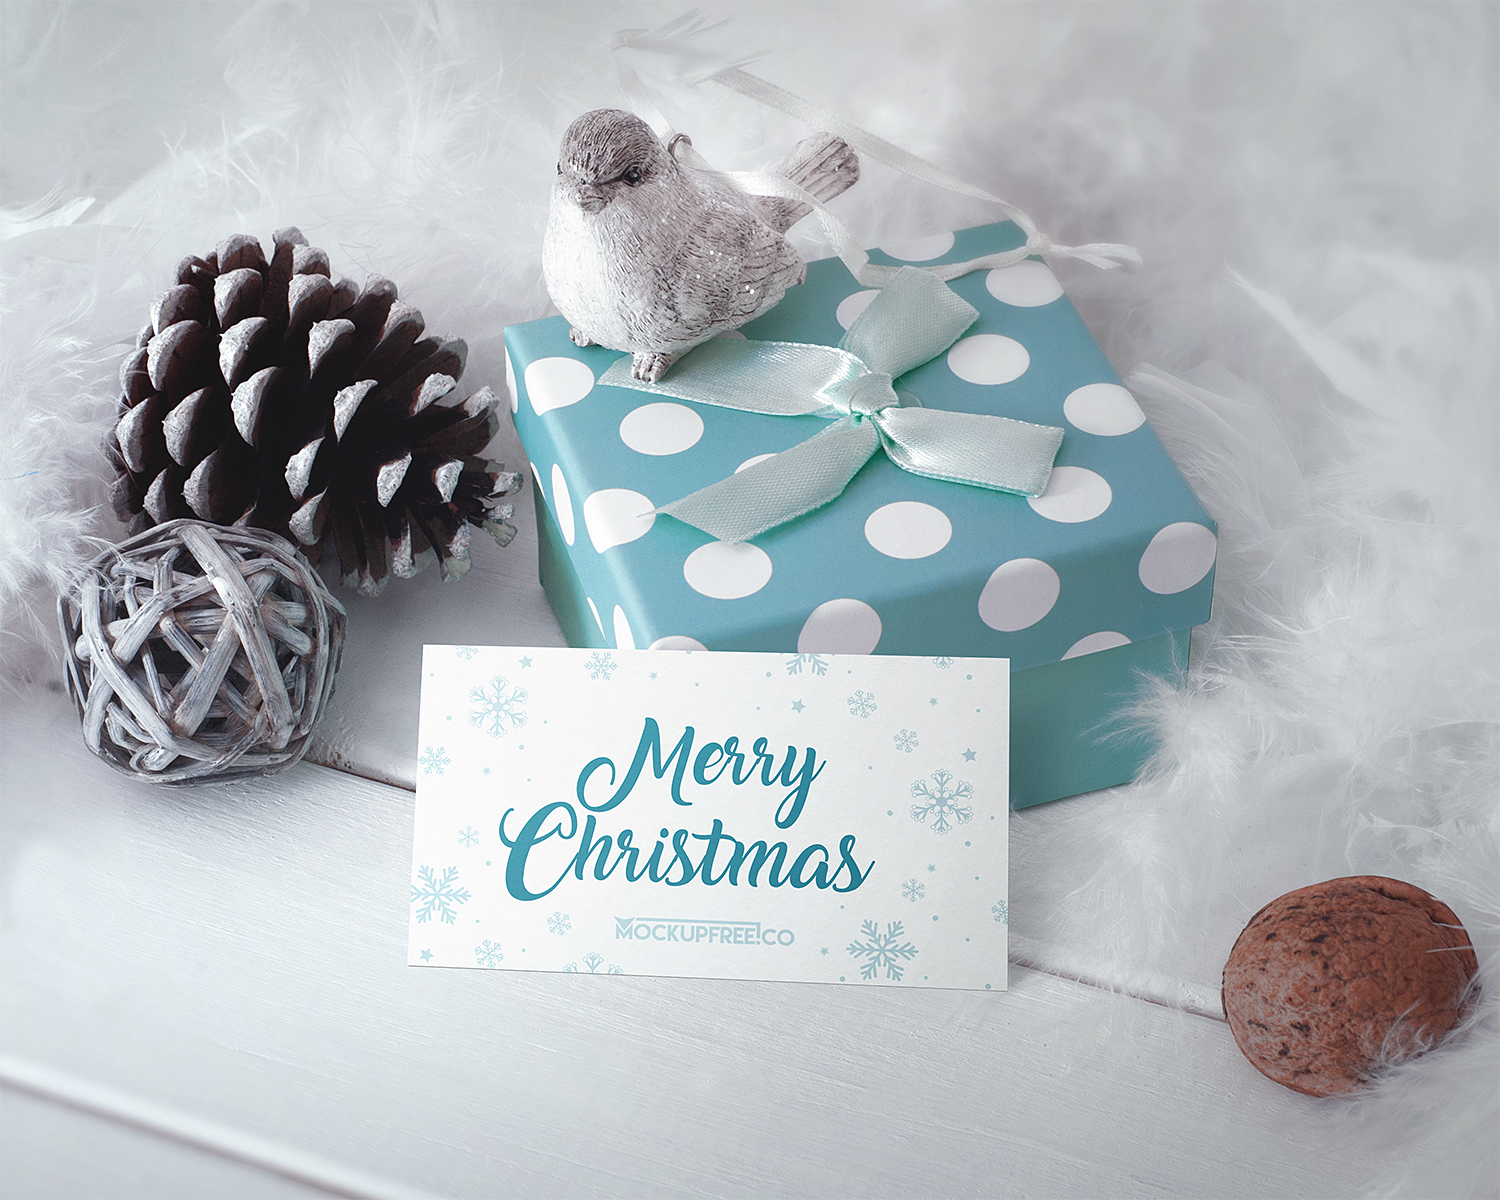 Christmas Mockup Package Free PSD